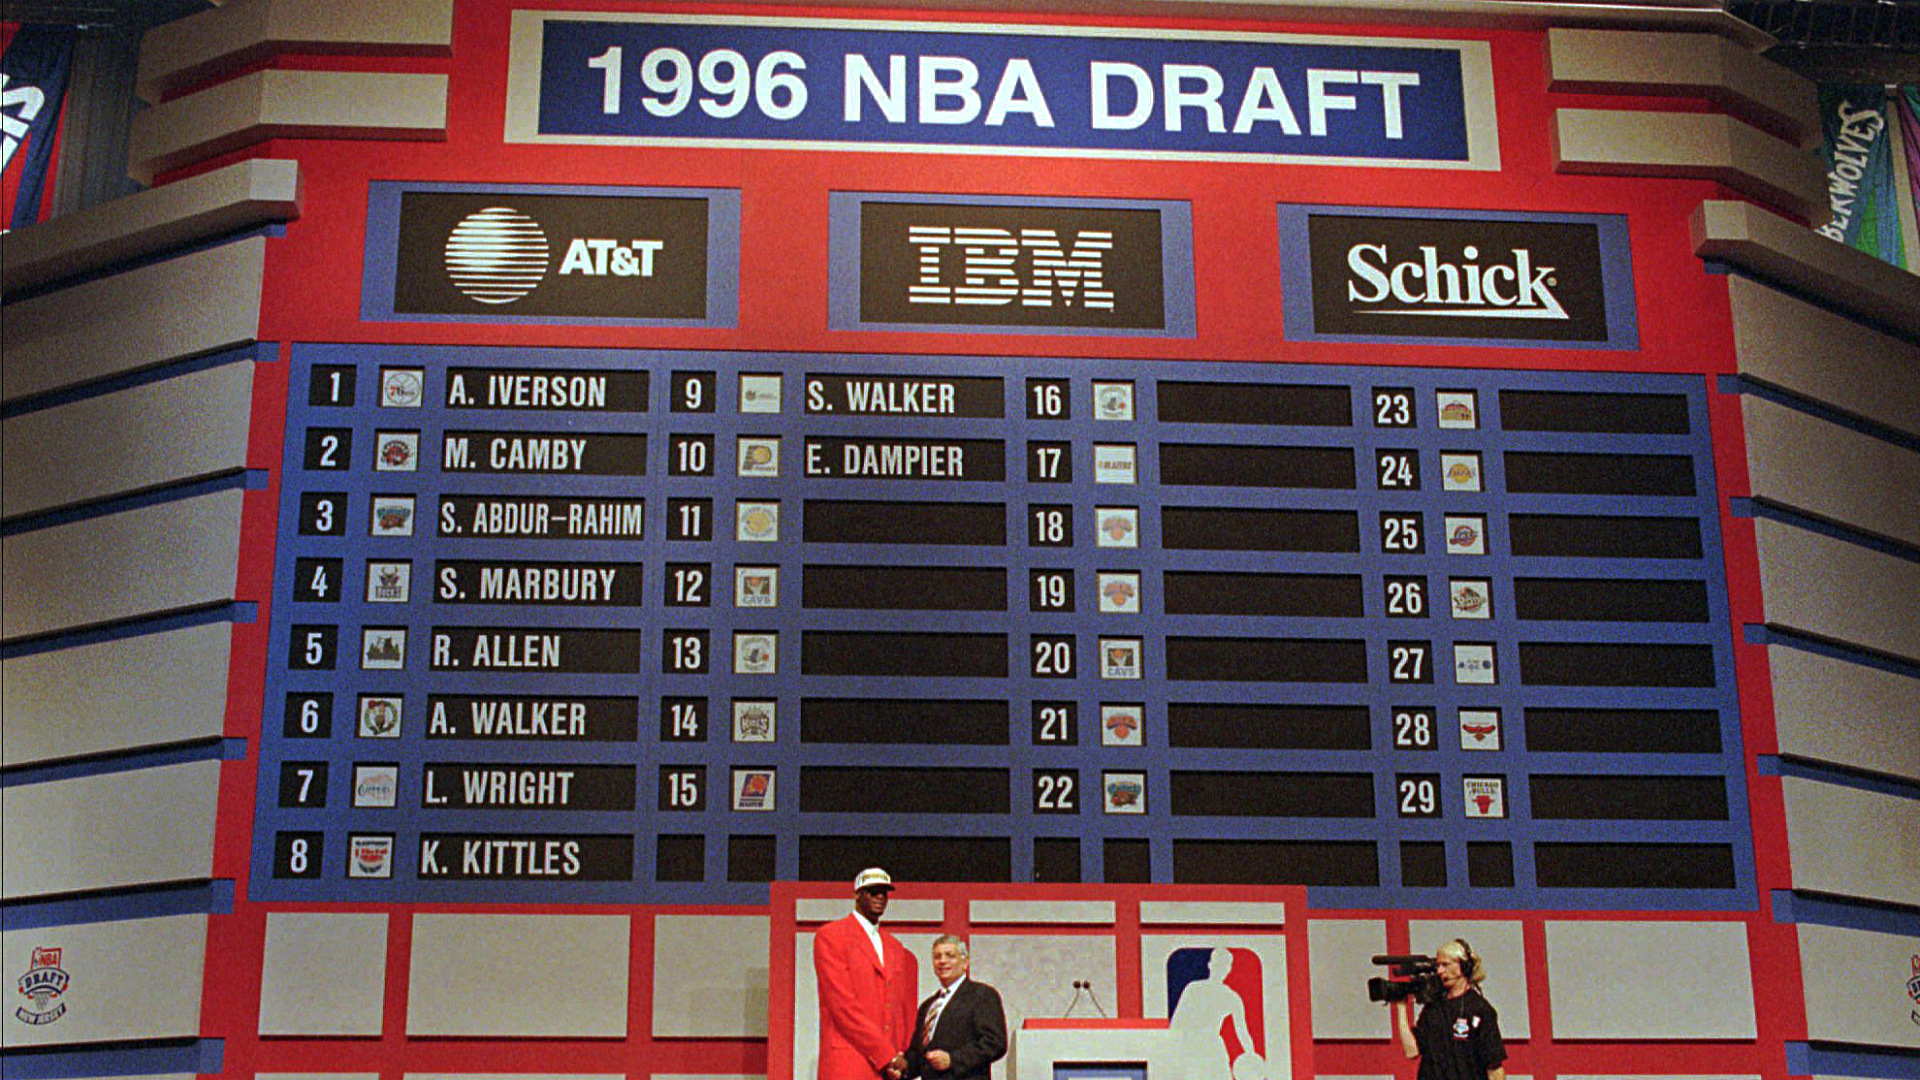 will the 1996 nba draft class go as the best